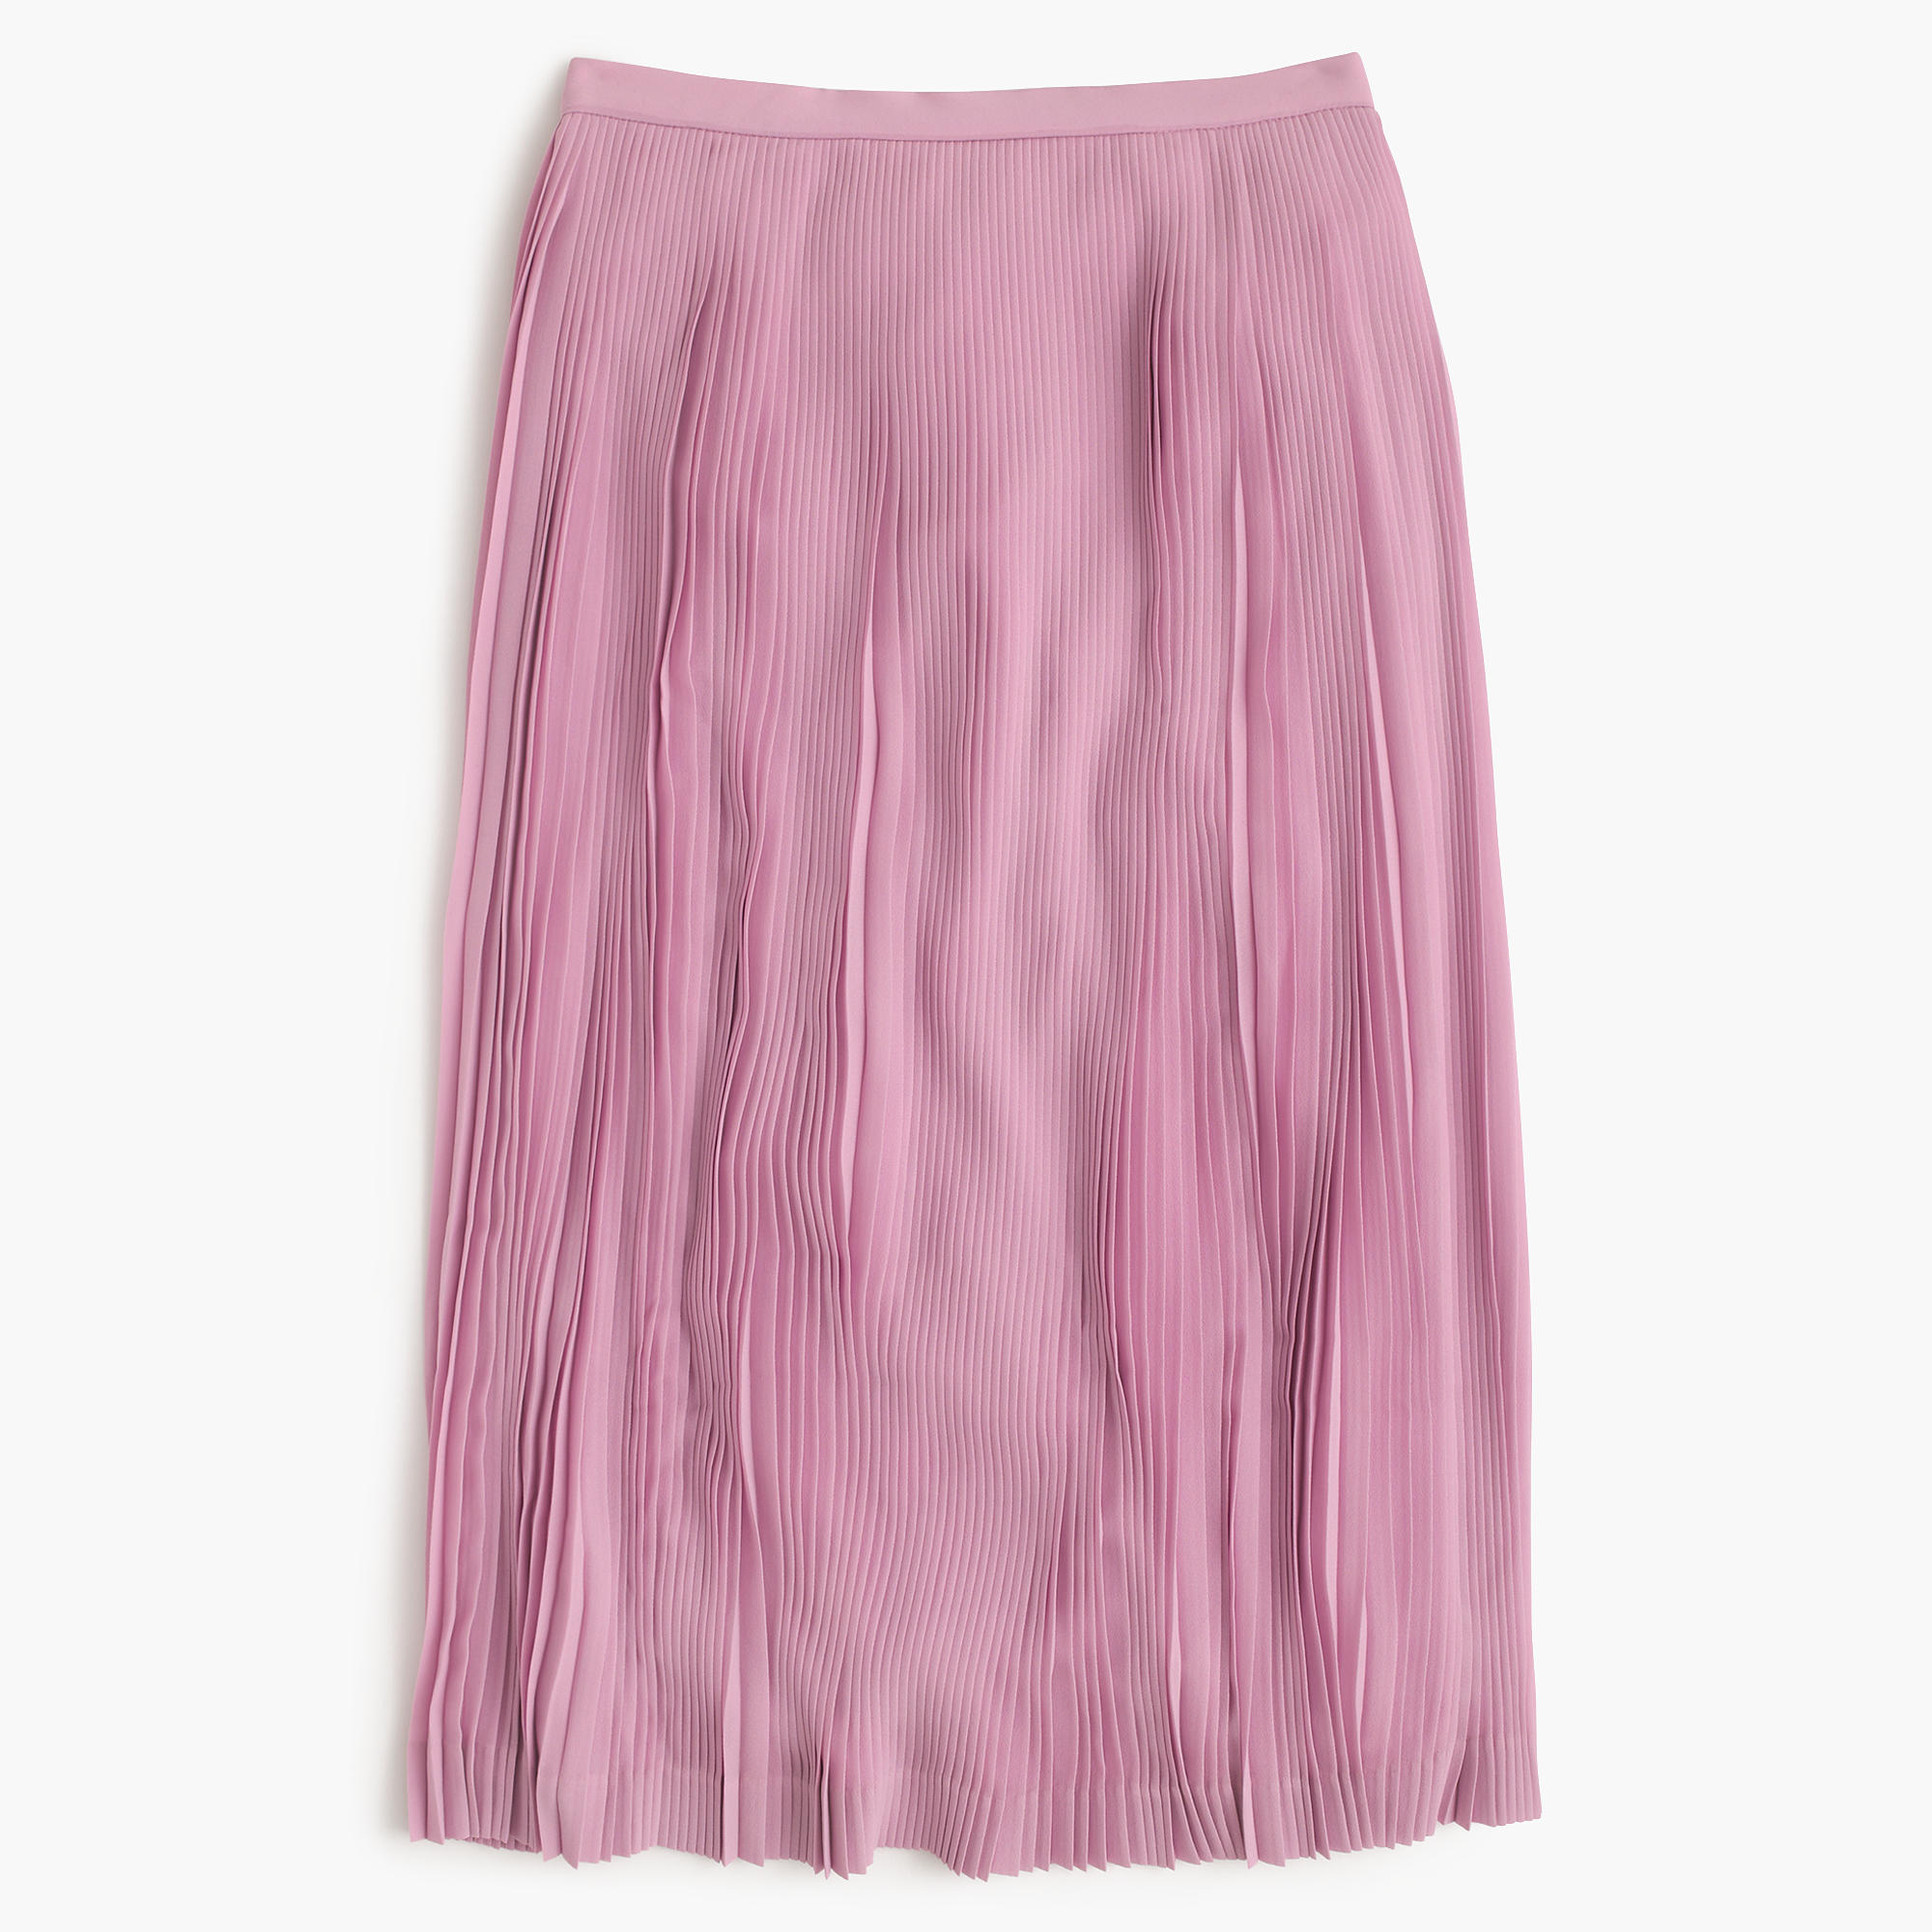 Trends for 2017 fashion - J Crew Pleated Skirt Breezles By Erin Evans